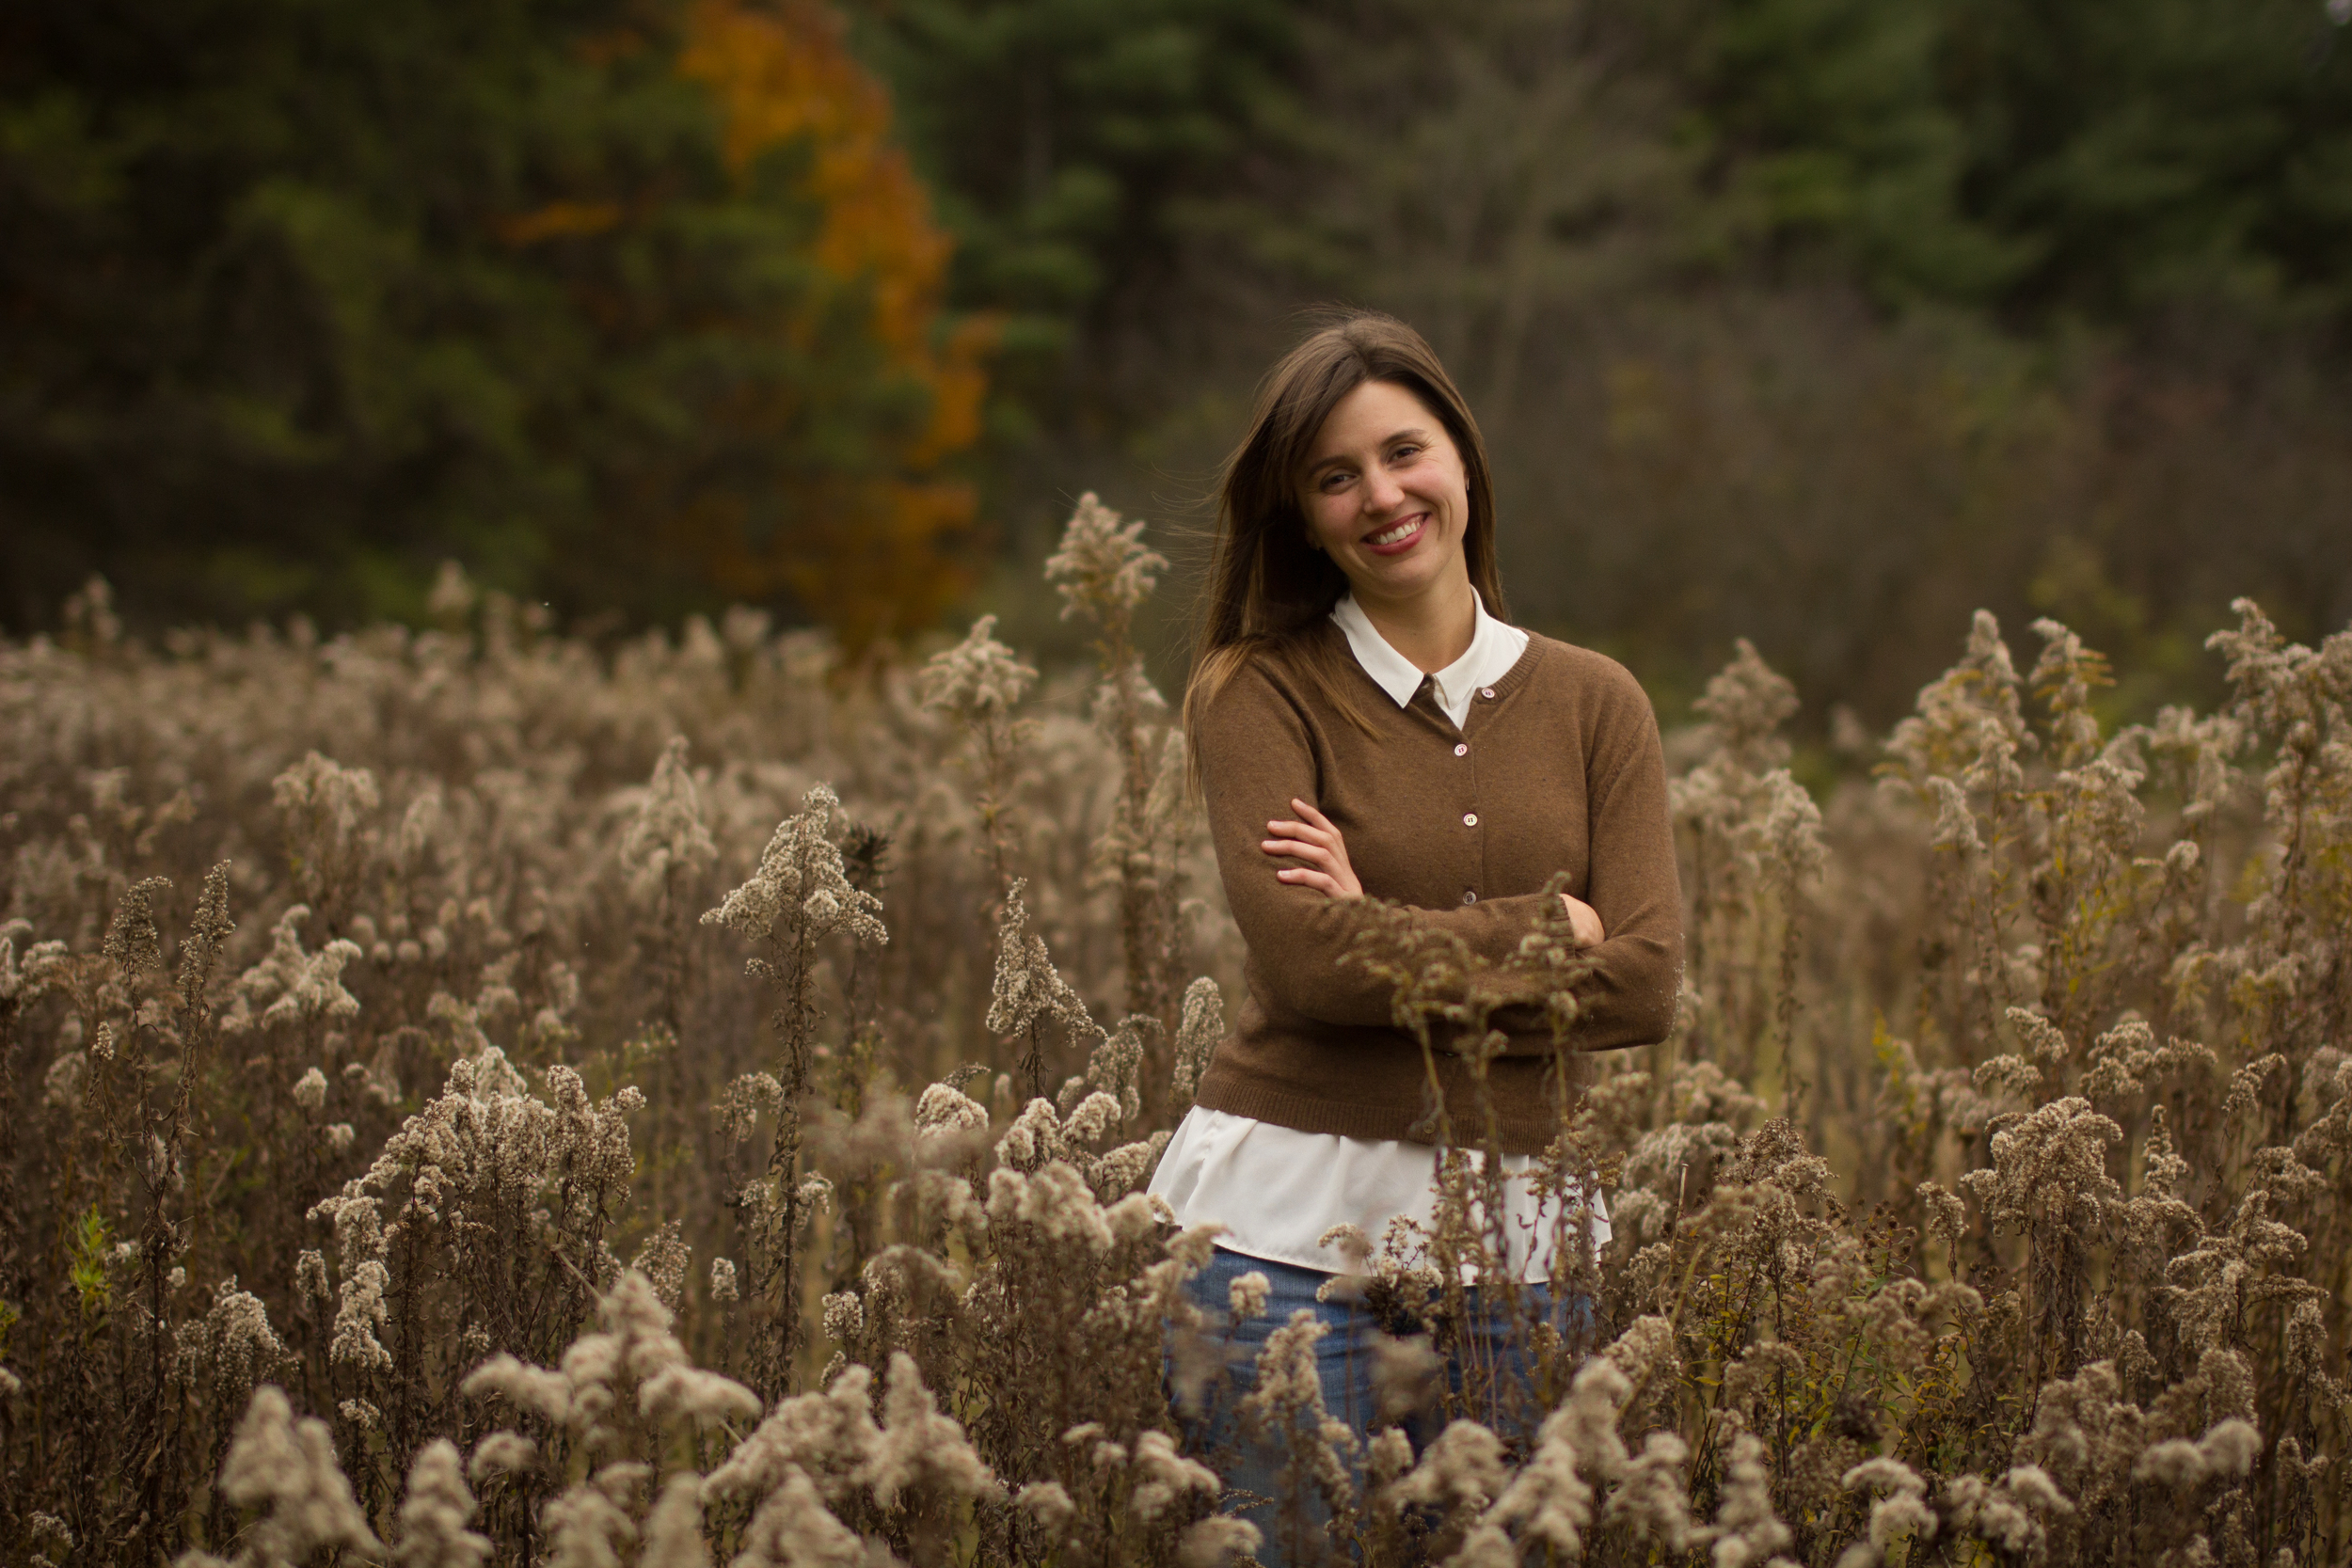 Dr. Emily Bennett, ND is a licensed naturopathic doctor offering compassionate, individualized care in Hamilton, ON. To learn more about Dr. Bennett, ND  click here.